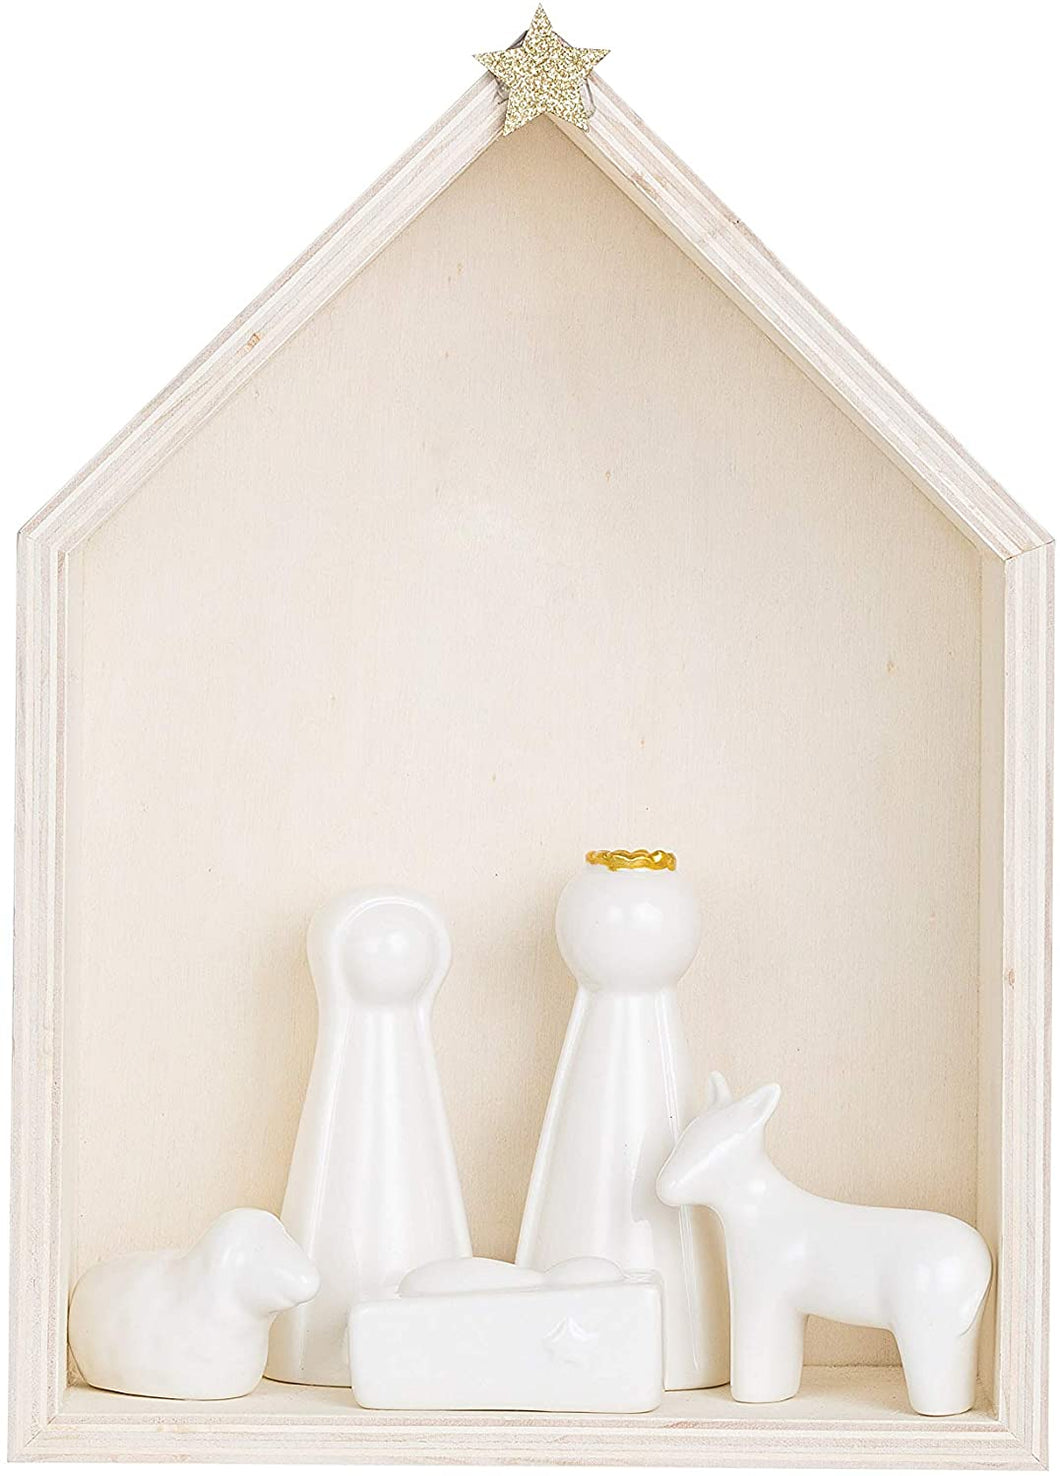 Wood Nativity with Ceramic (Set of 6 Pieces) Figures and Figurines, White